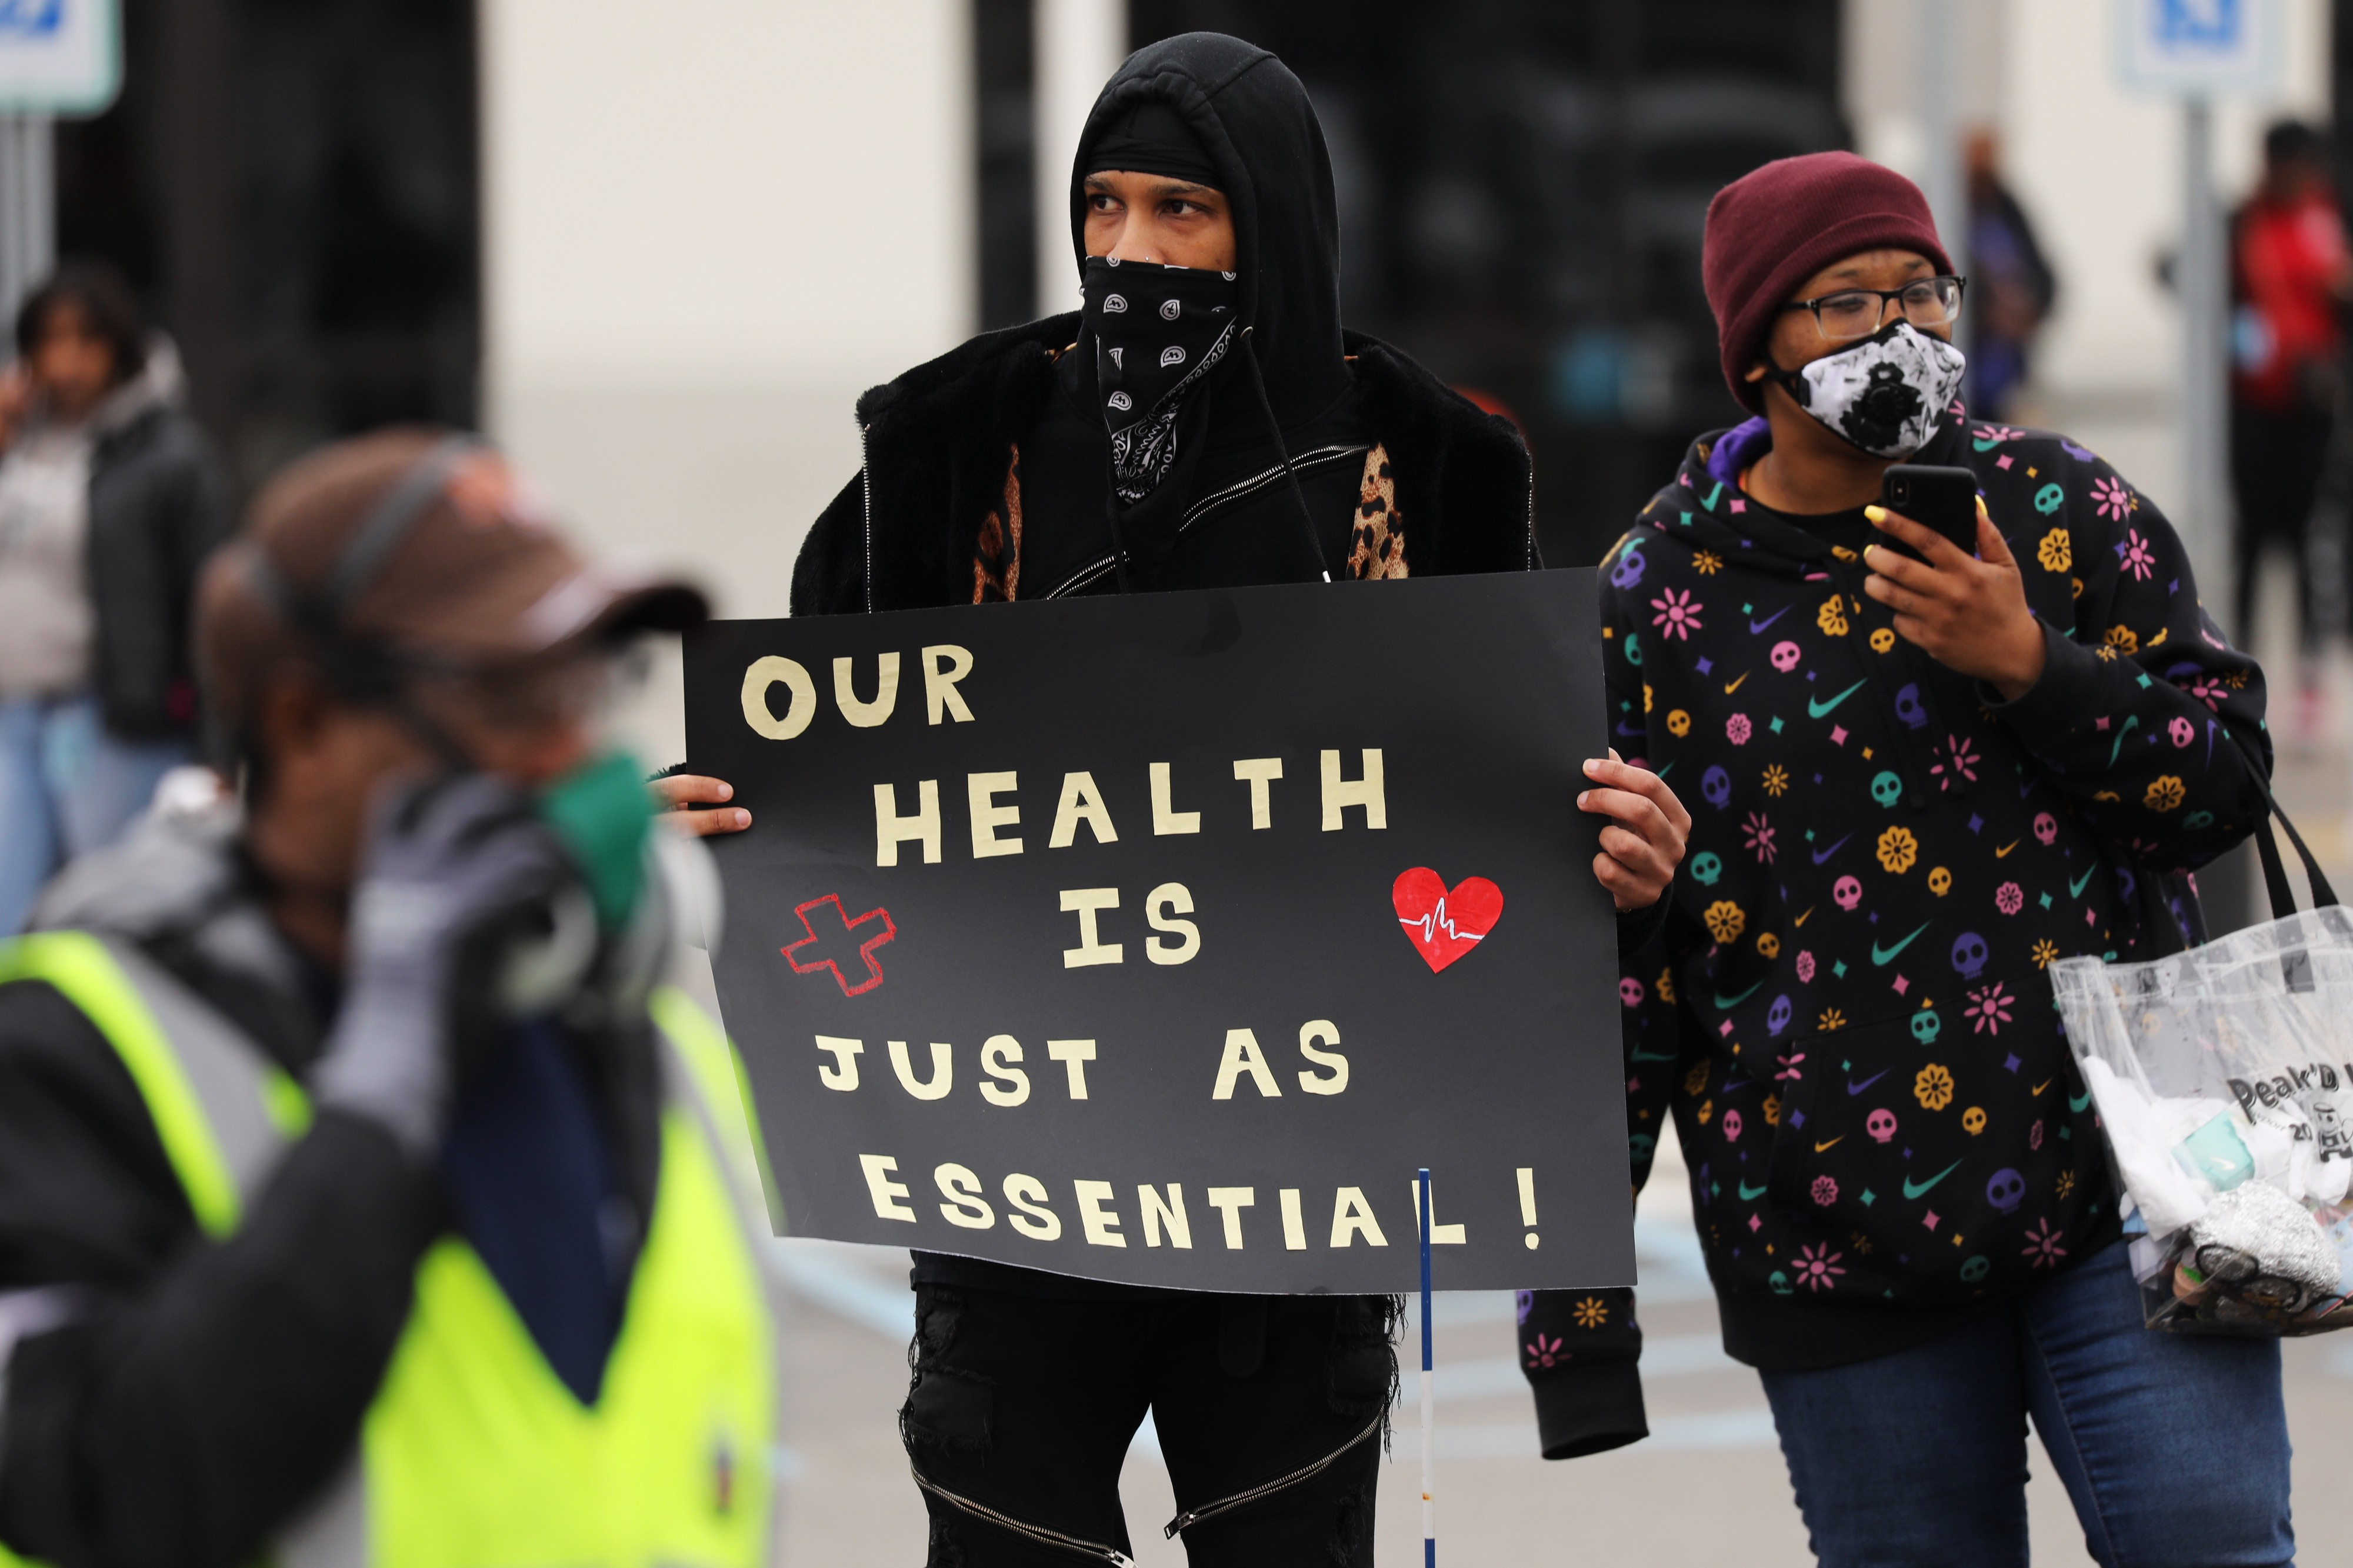 """A photo of Amazon workers protesting. One is holding up a sign that says """"Our health is just as essential."""""""